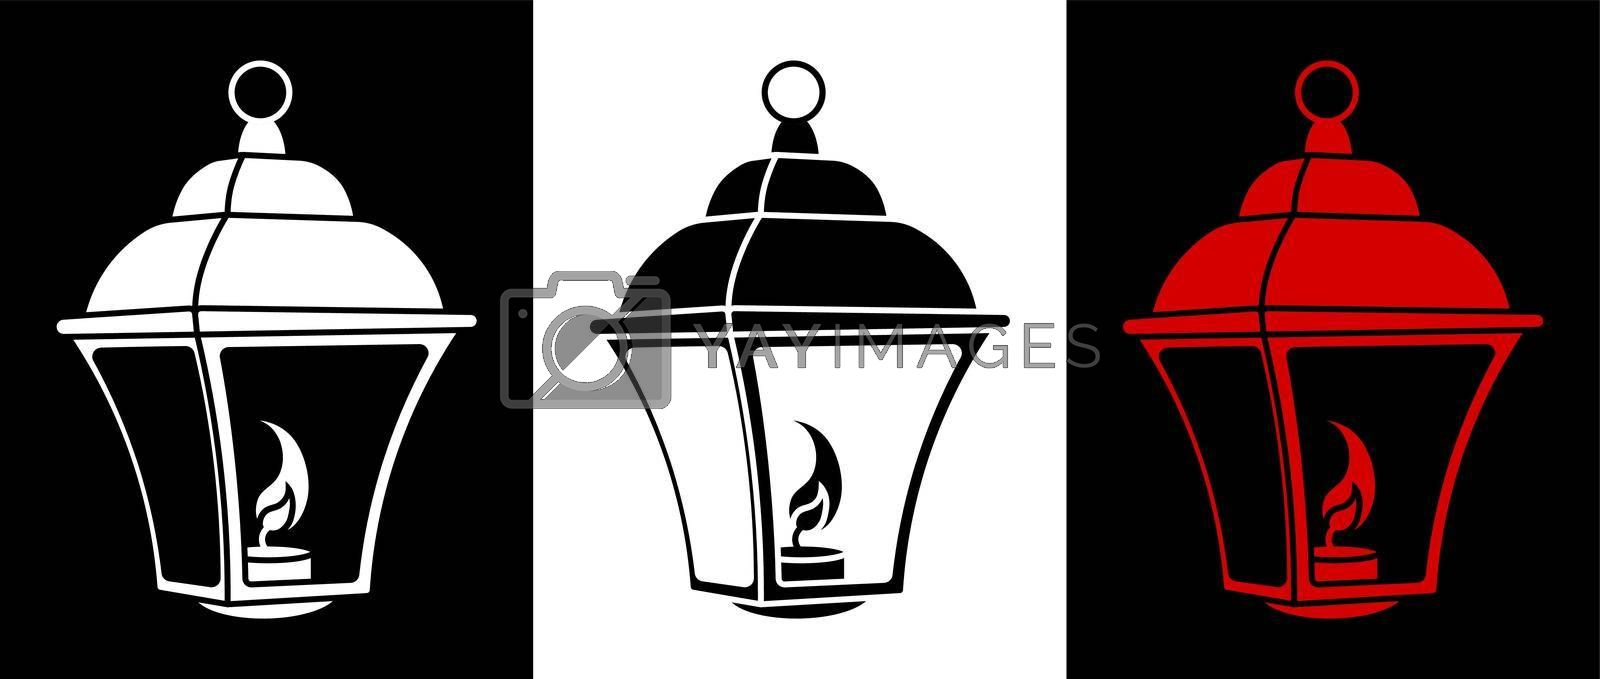 street light icon with burning candles inside. Vintage style. Night romance of big city. Street lighting at night. Black and white vector